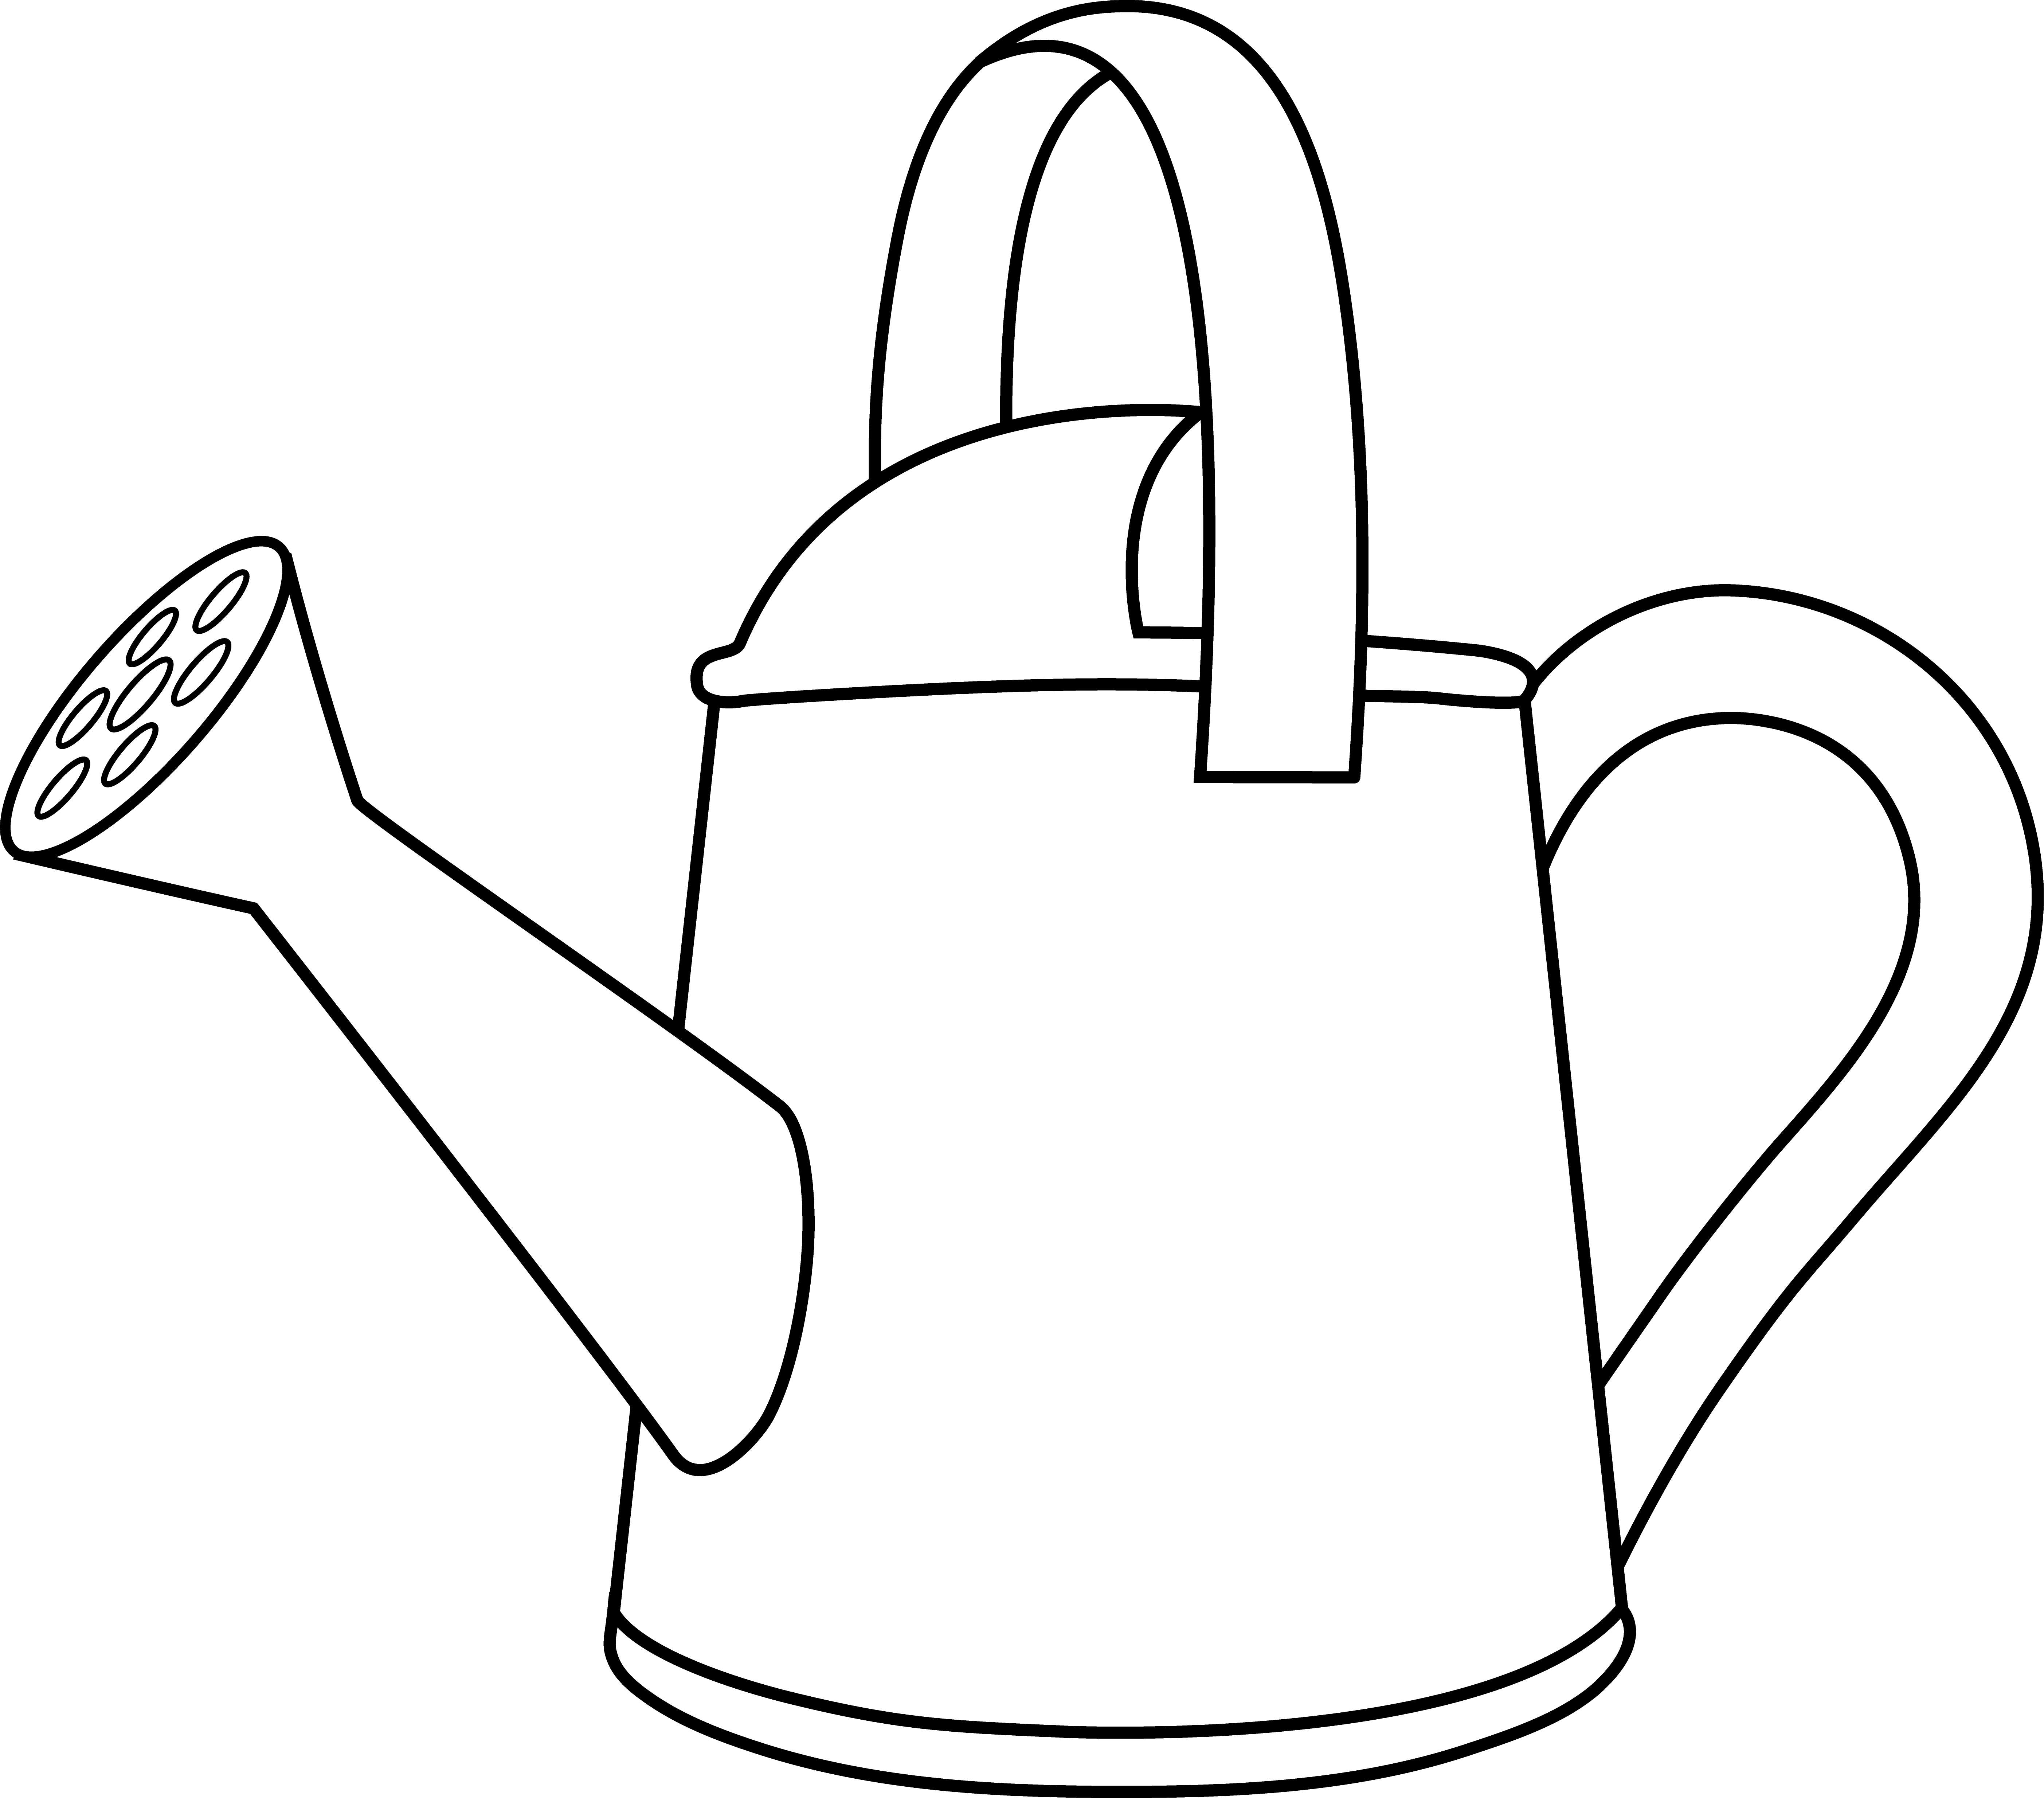 Watering Can Lineart to Color in.